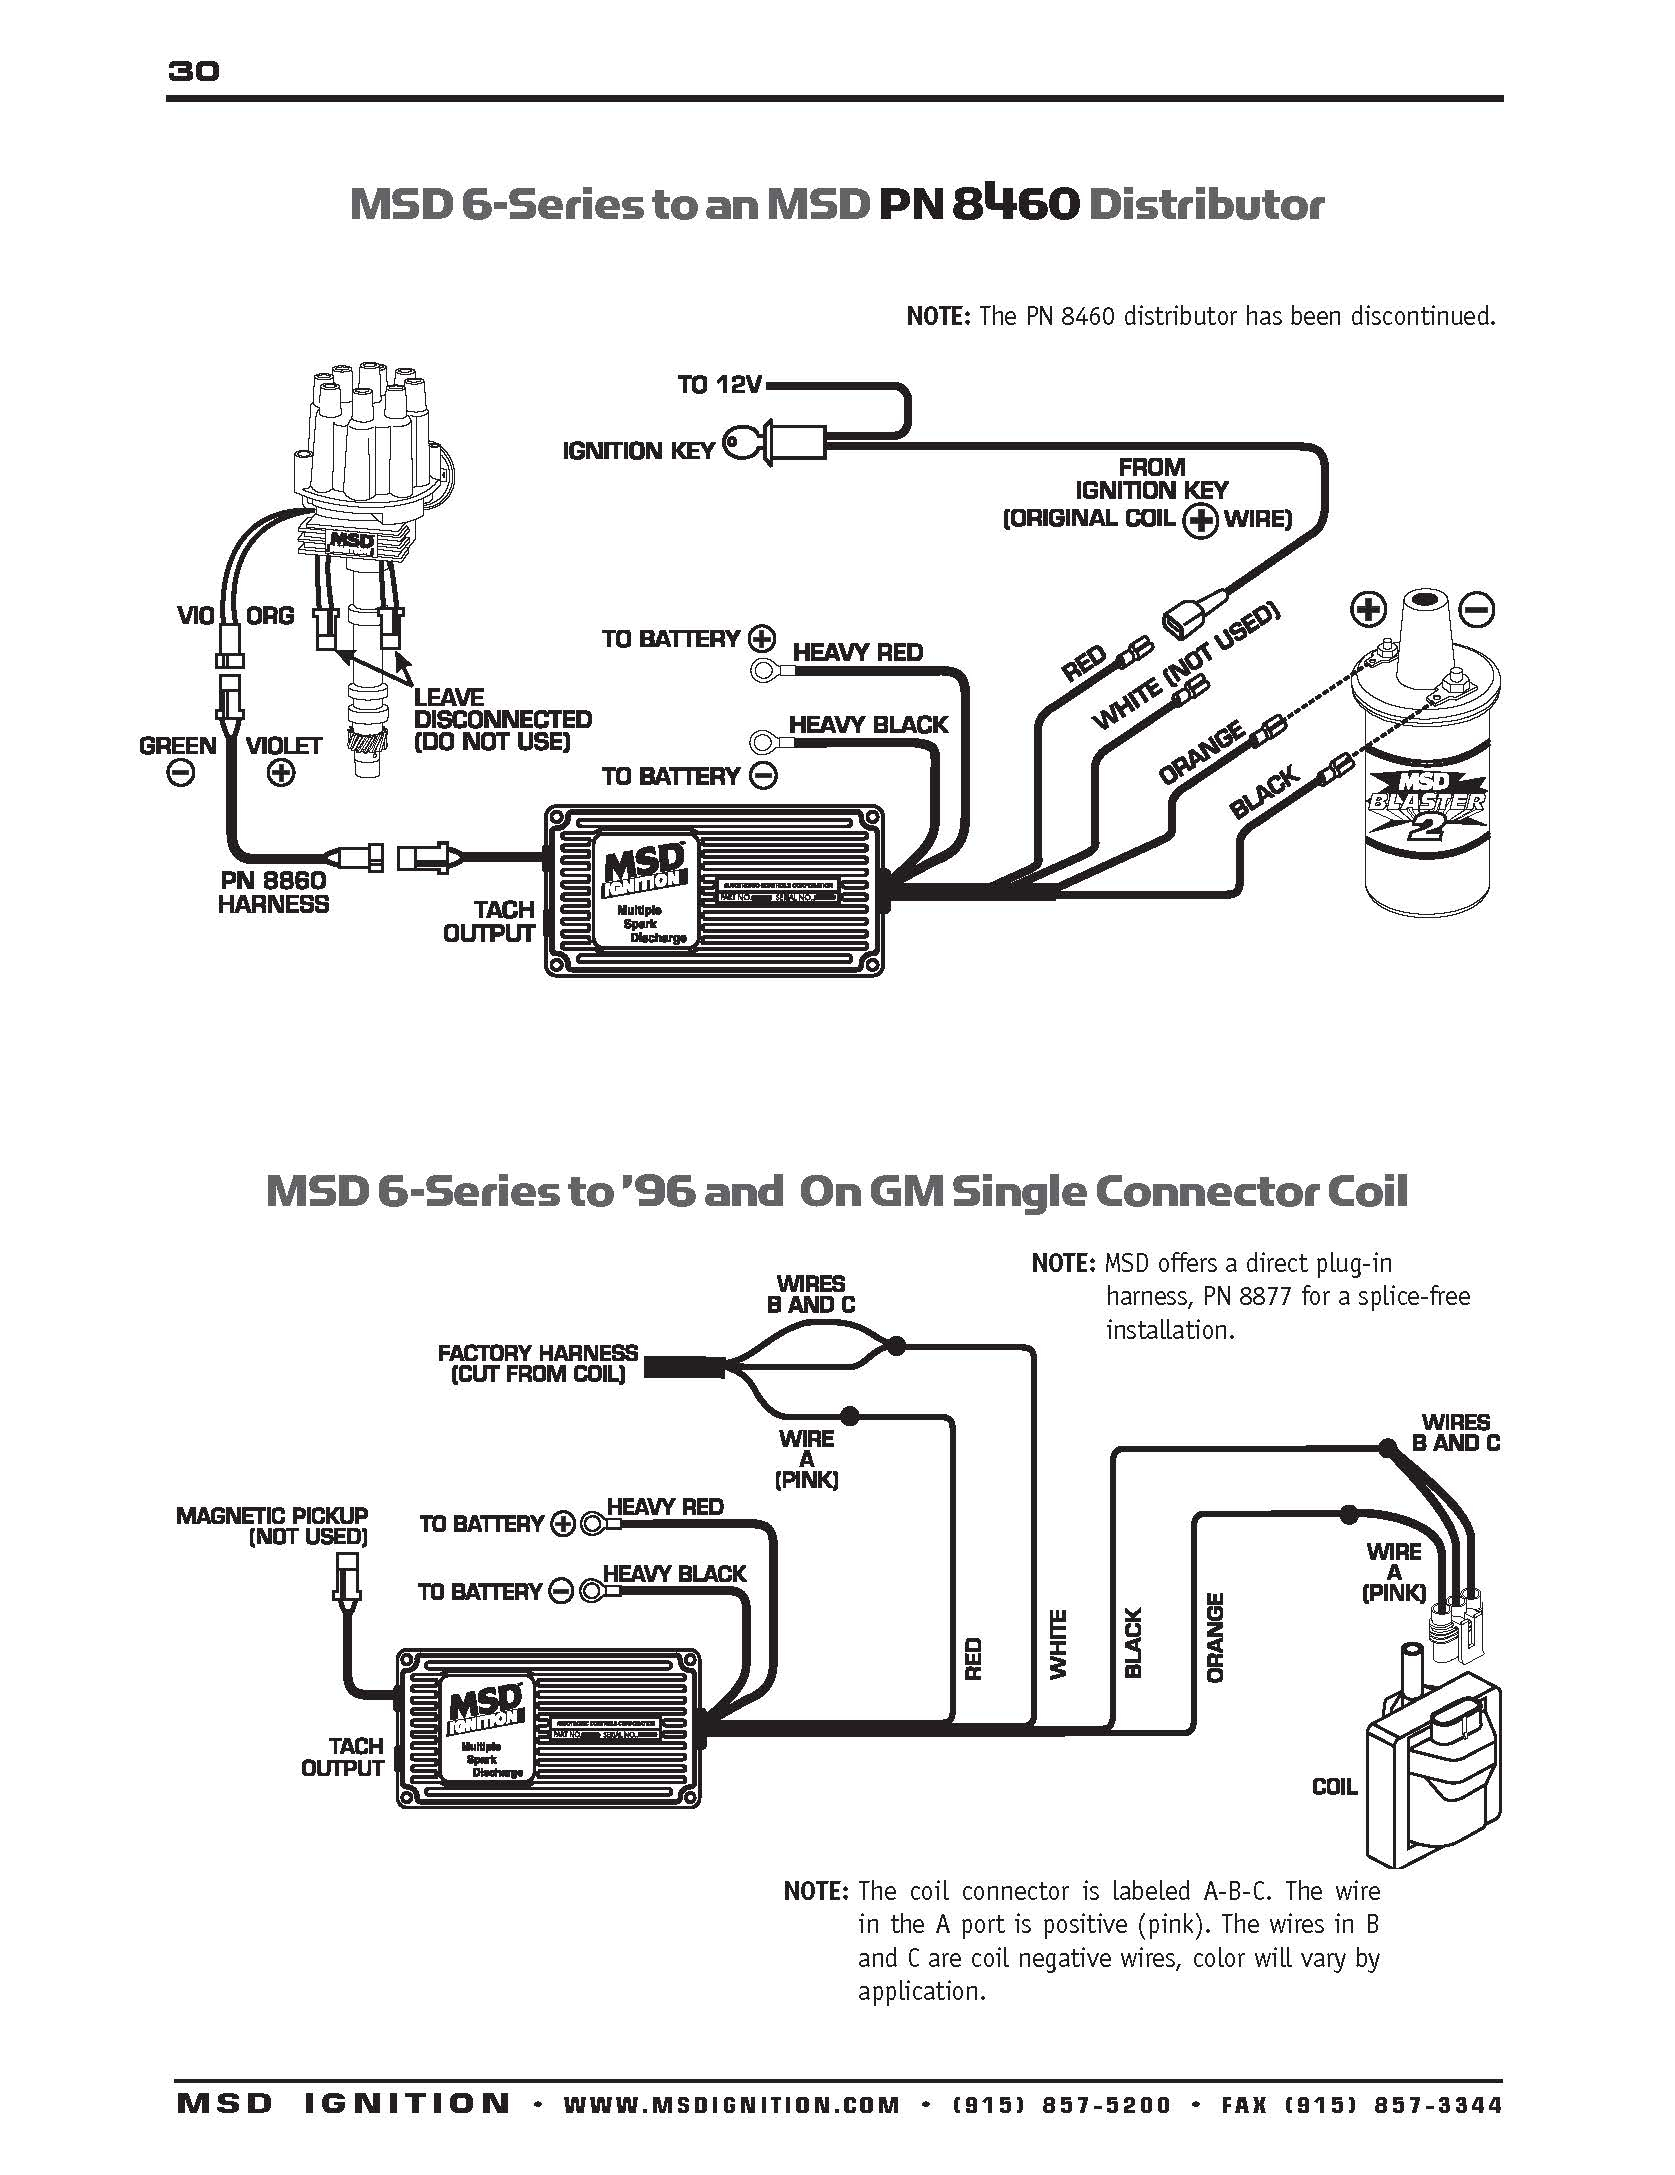 Msd Distributor Wiring Diagram Two Wire - Wiring Diagrams Hubs - Msd Distributor Wiring Diagram